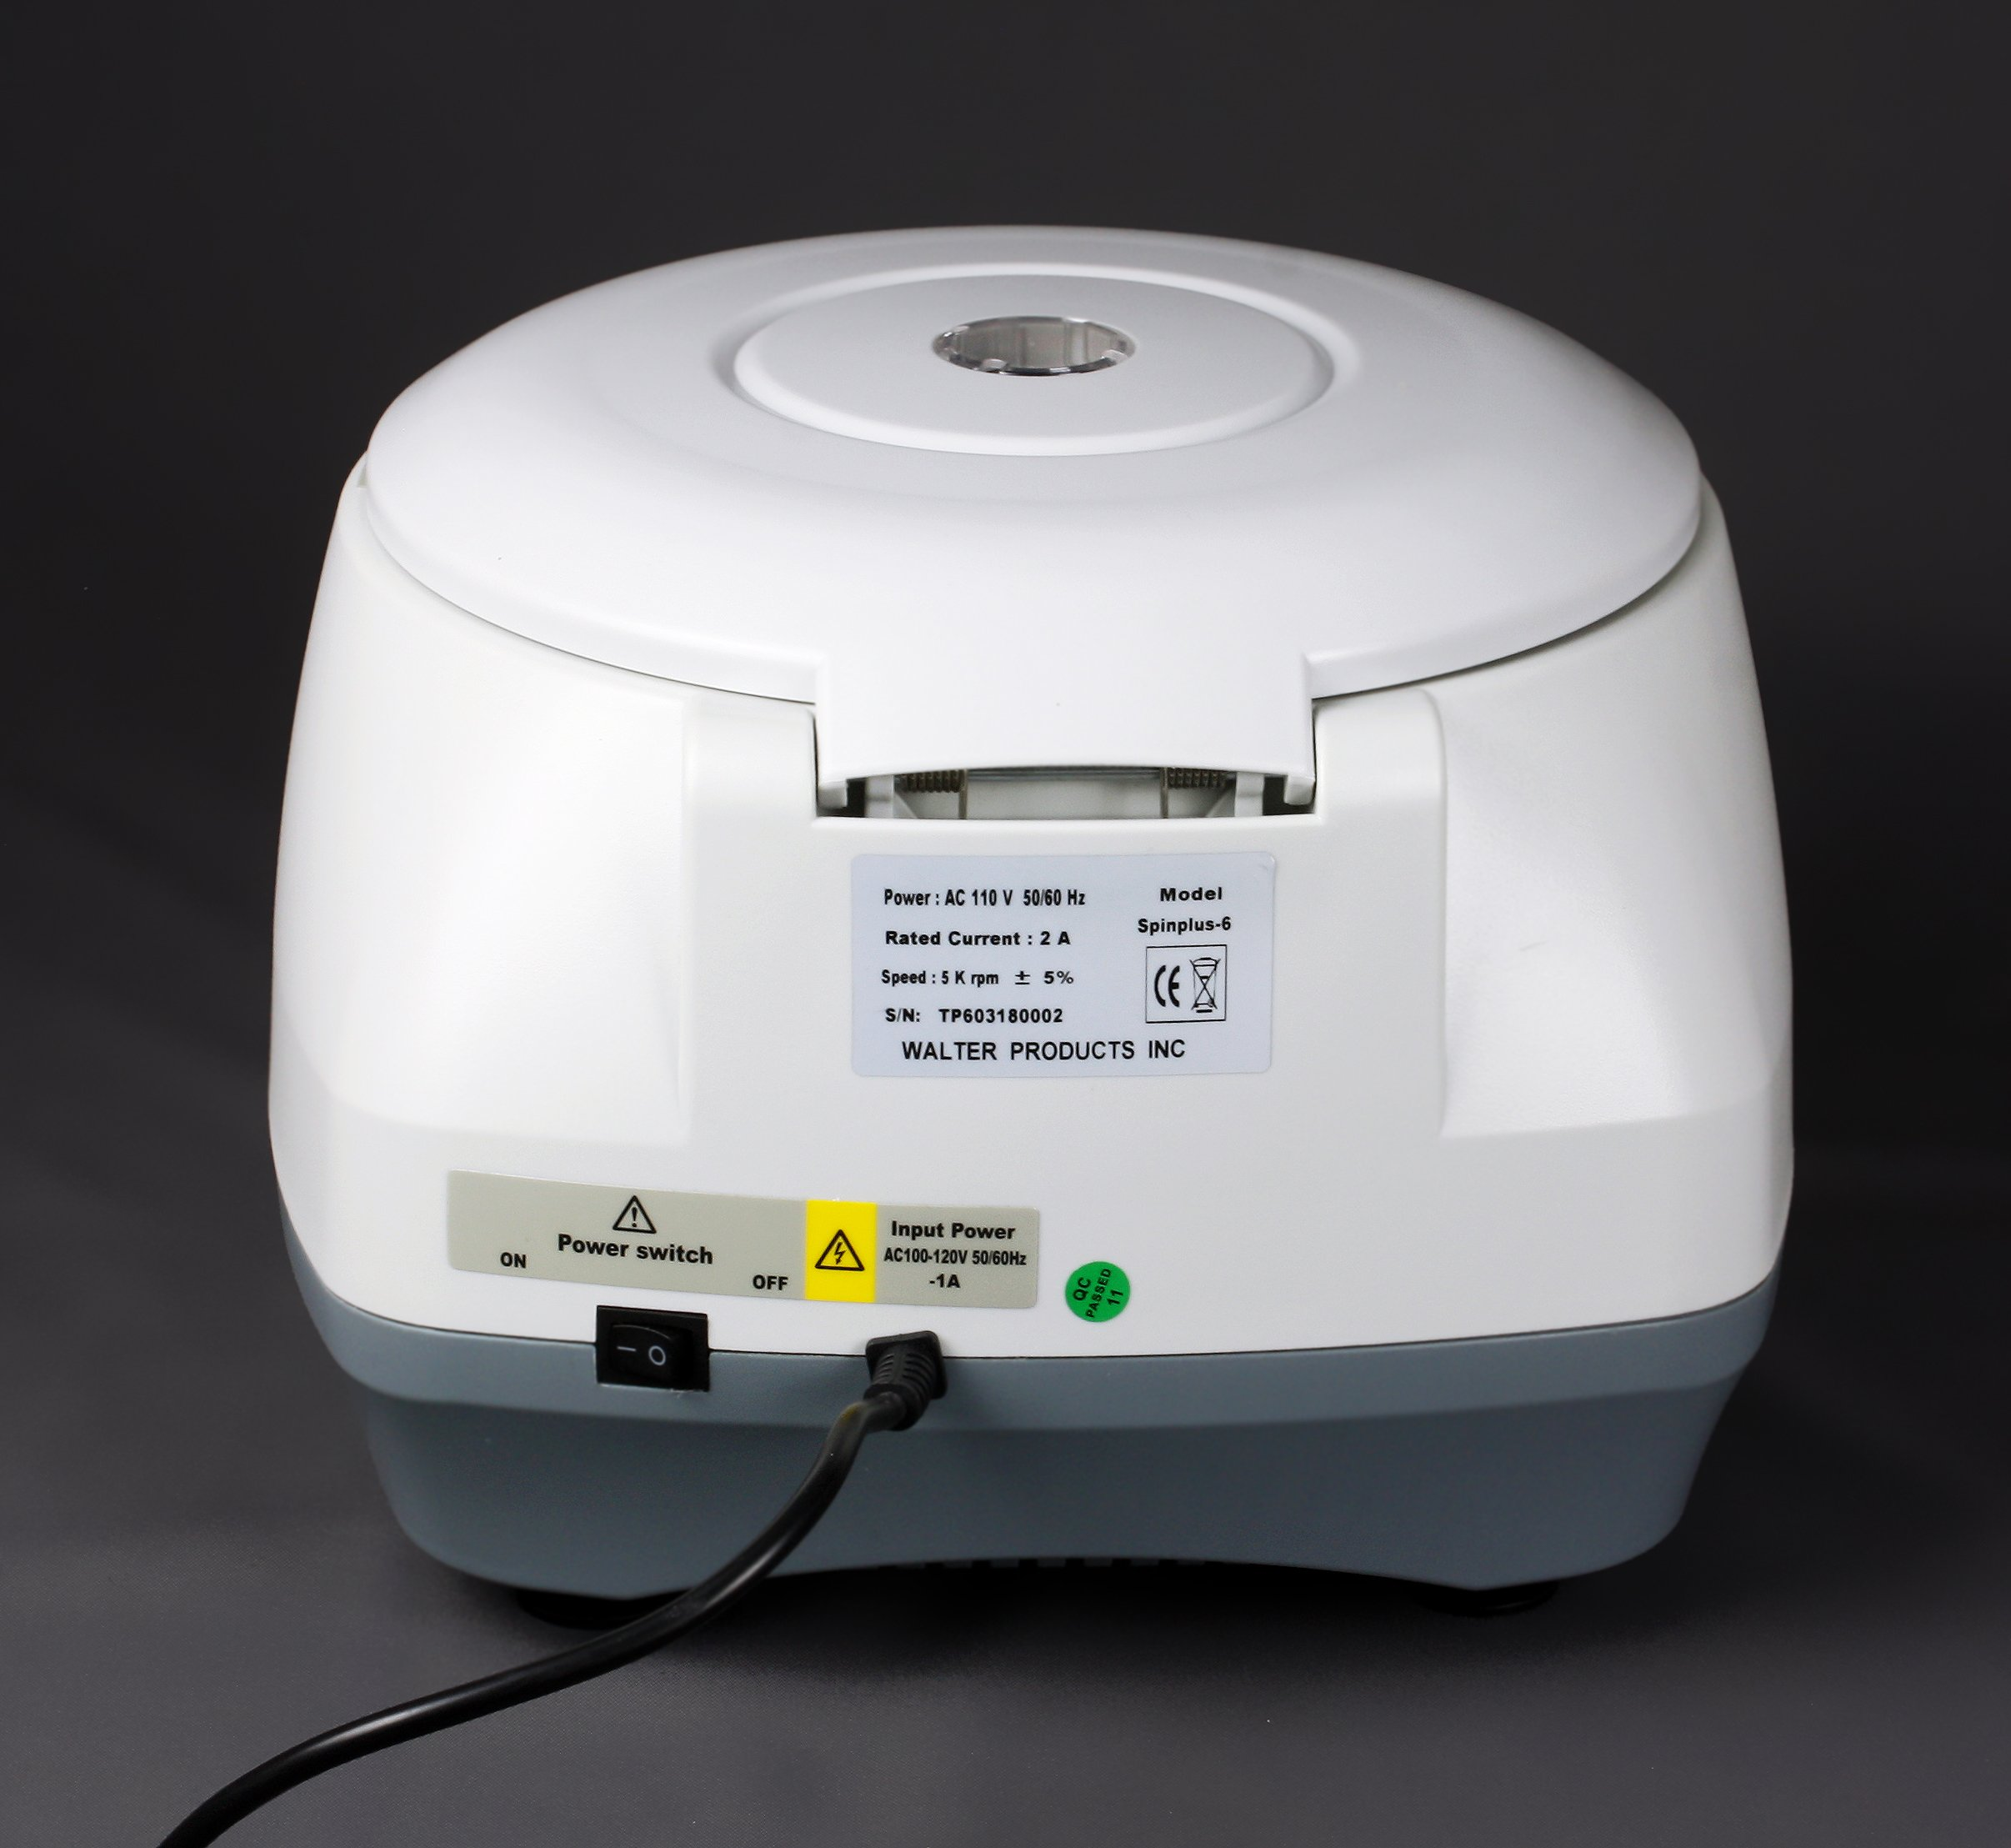 Parco Scientific Digital Bench-top Centrifuge,100-5000rpm (Max. 3074xg), LCD Display, Includes 15ML X 6 Rotor by Parco Scientific (Image #4)